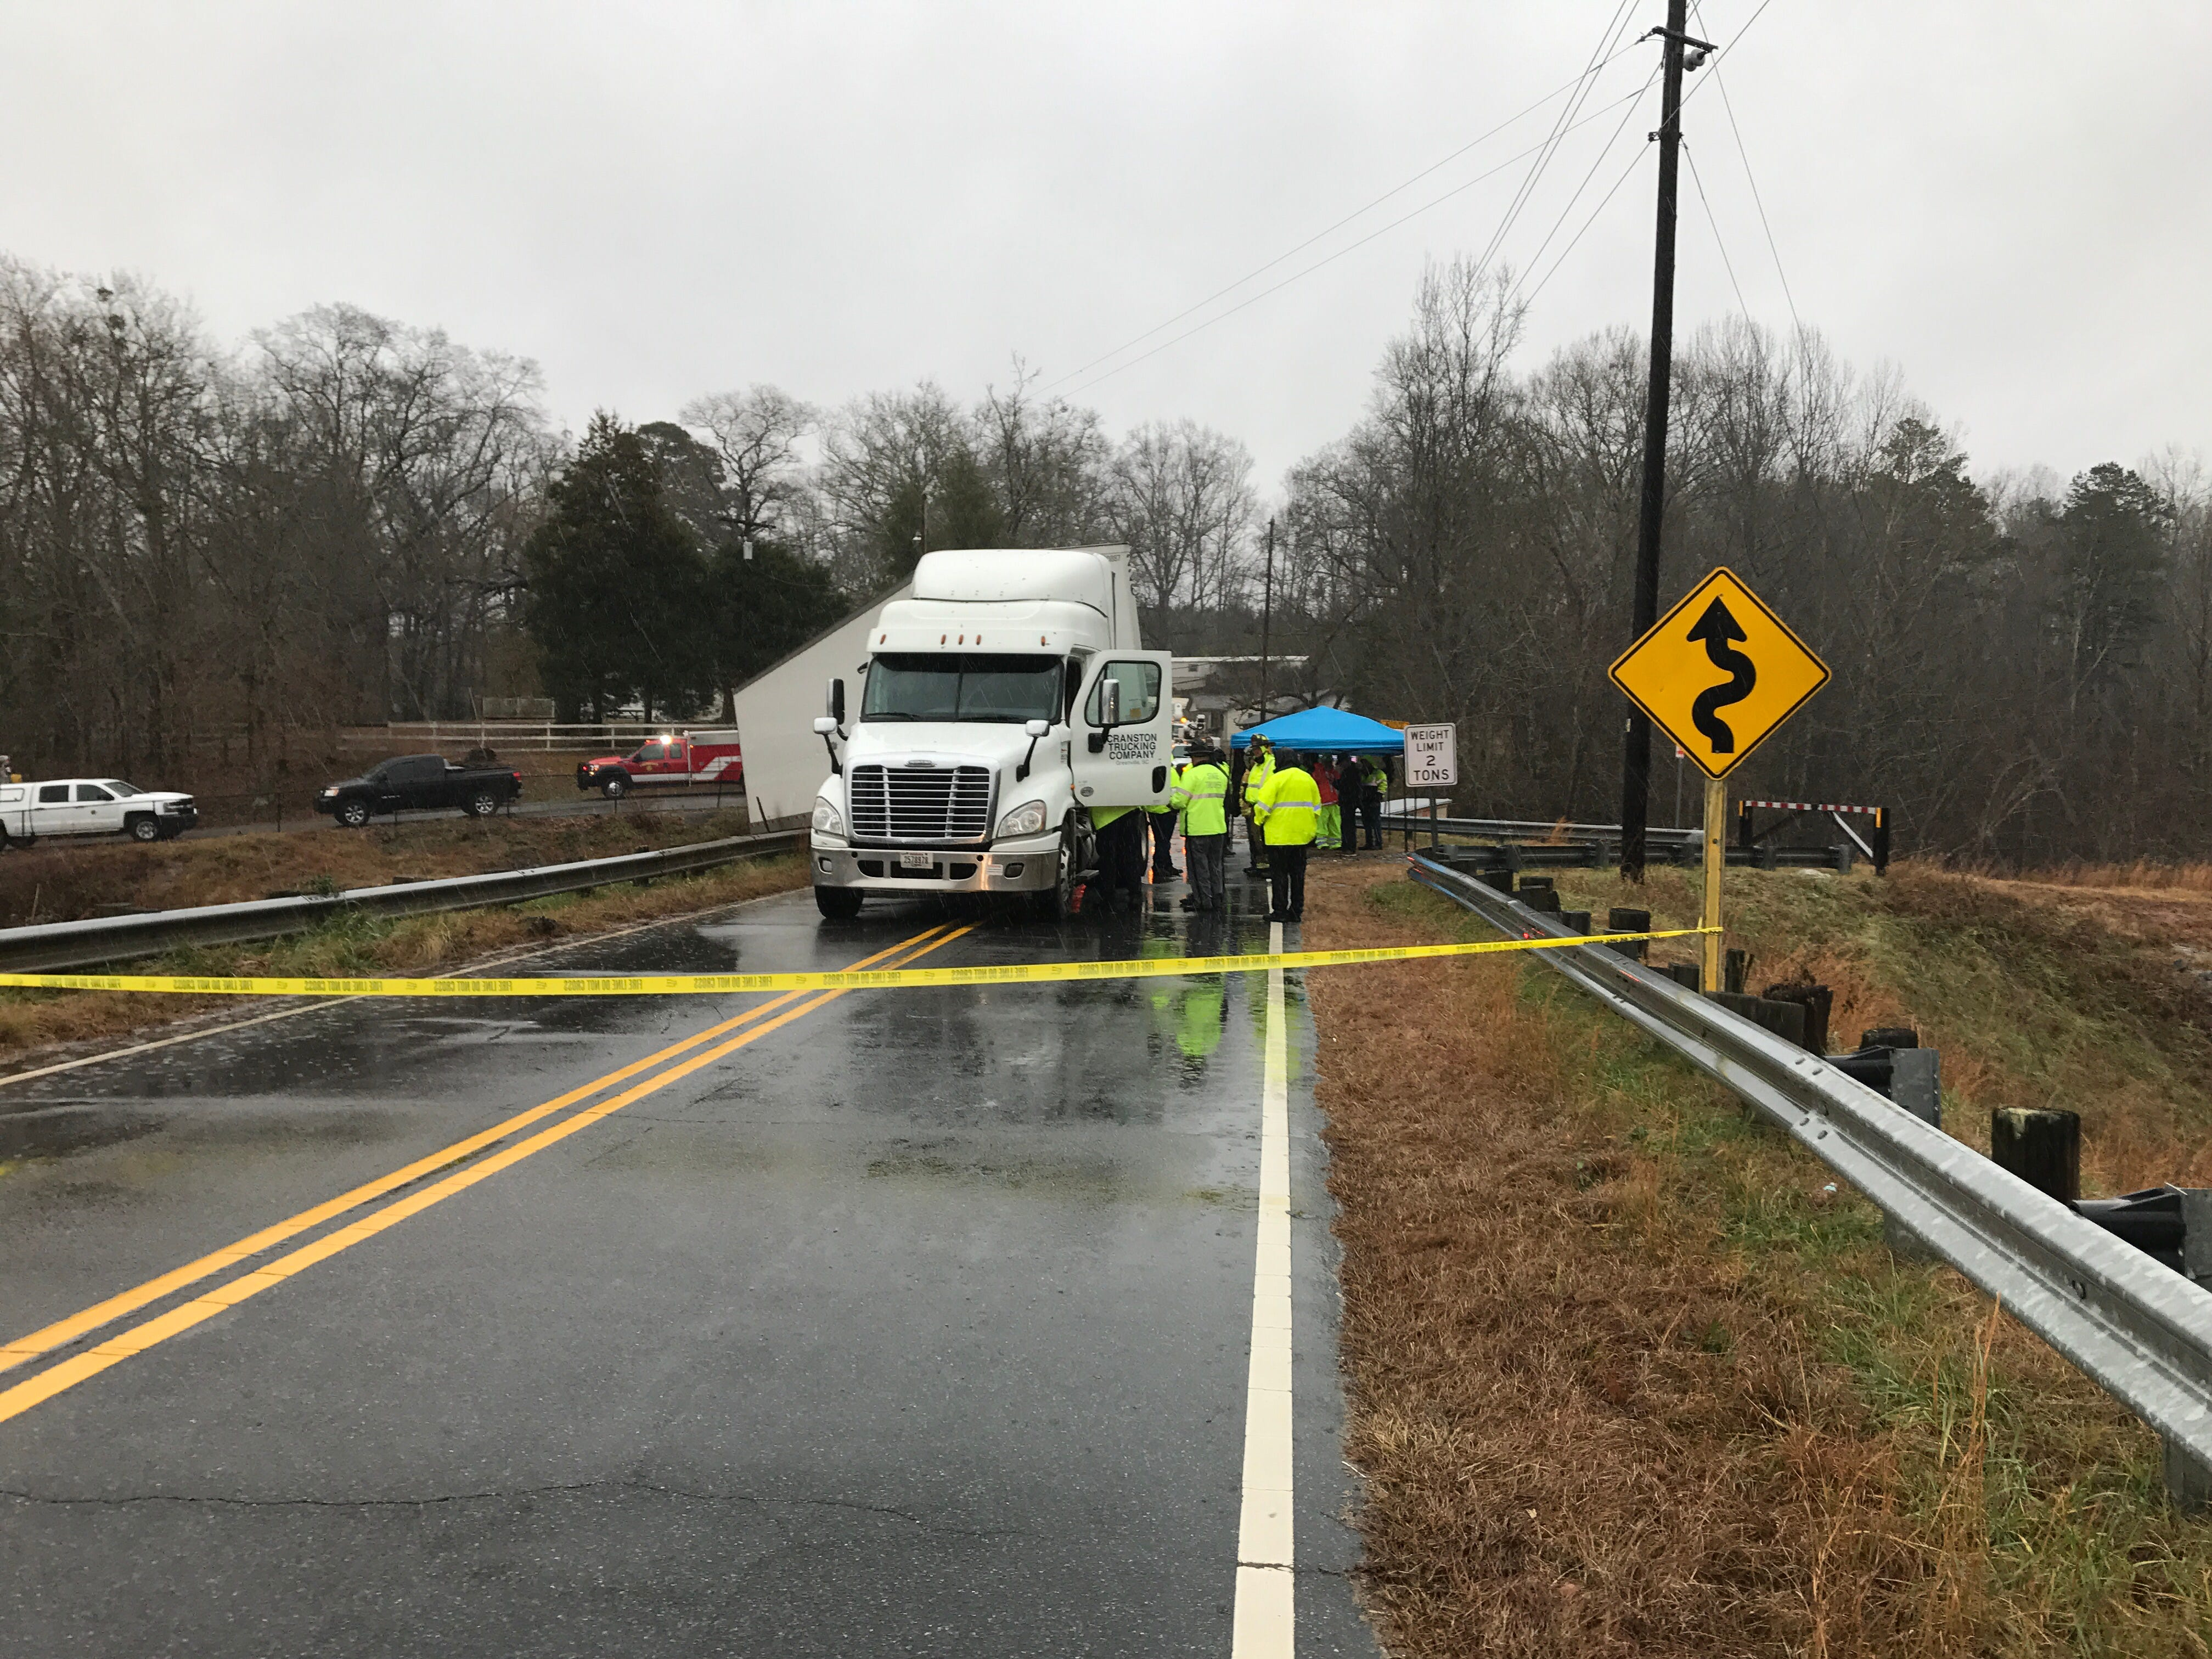 A truck attempting to back up off Broadway Lake Bridge went over the guardrail, according to the S.C. Highway Patrol.